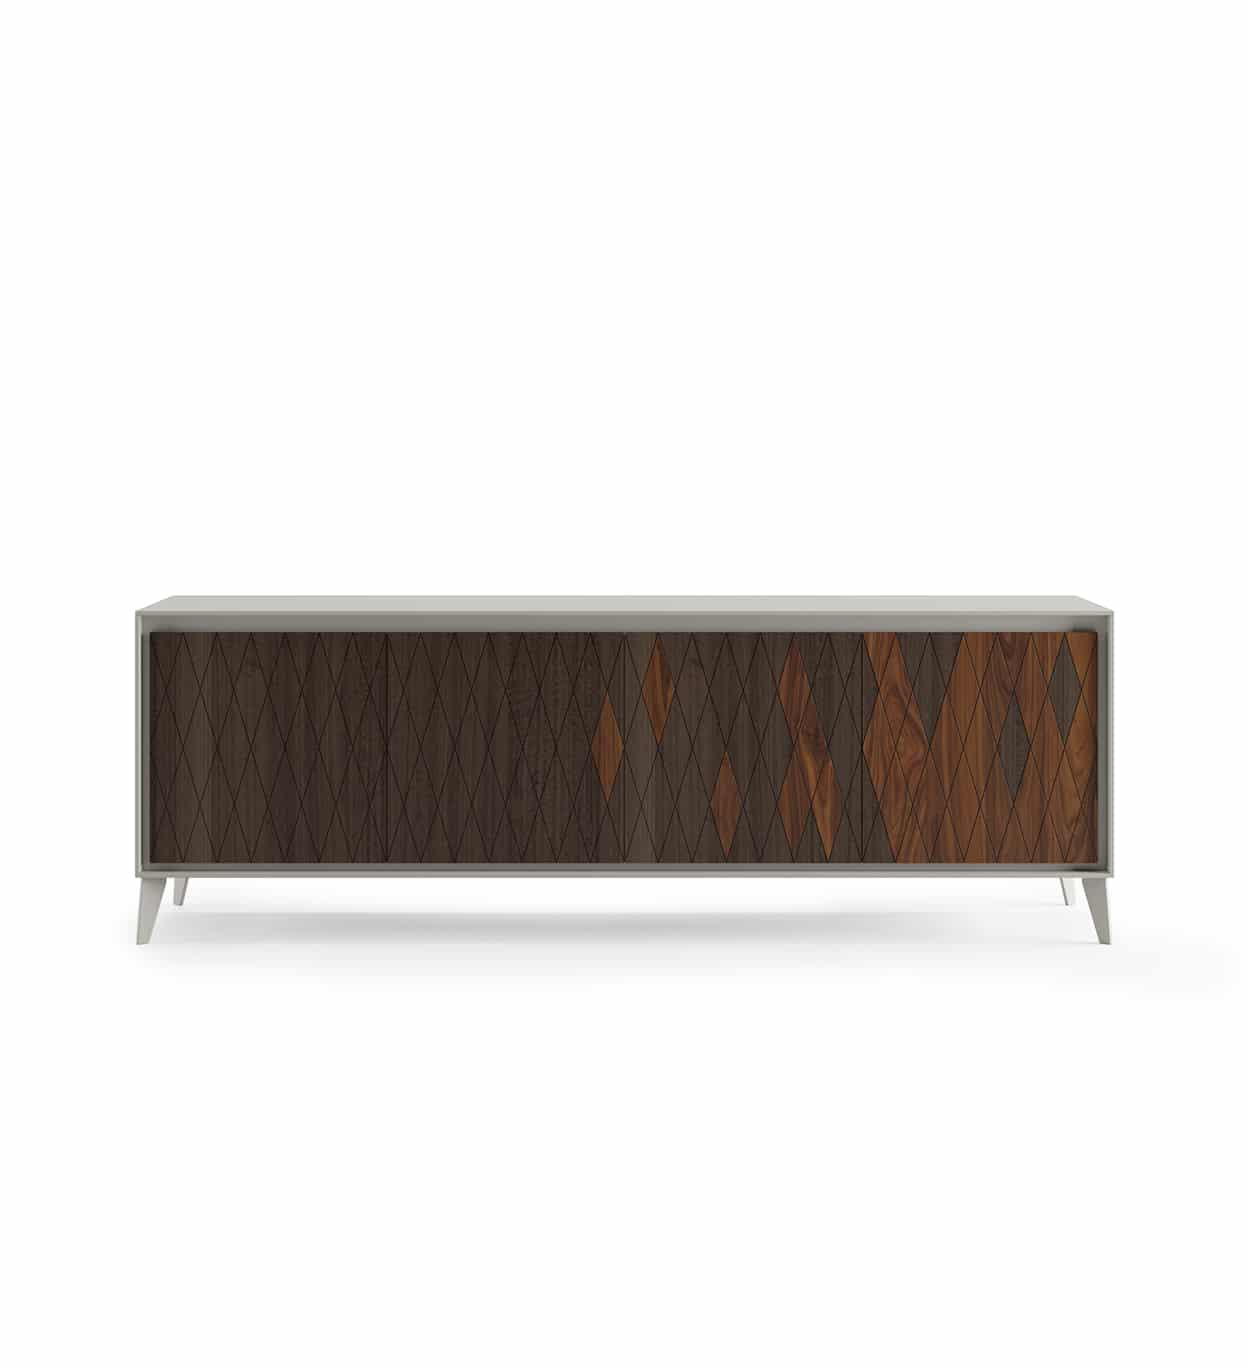 dining-room-sideboards-rombi-ii-front